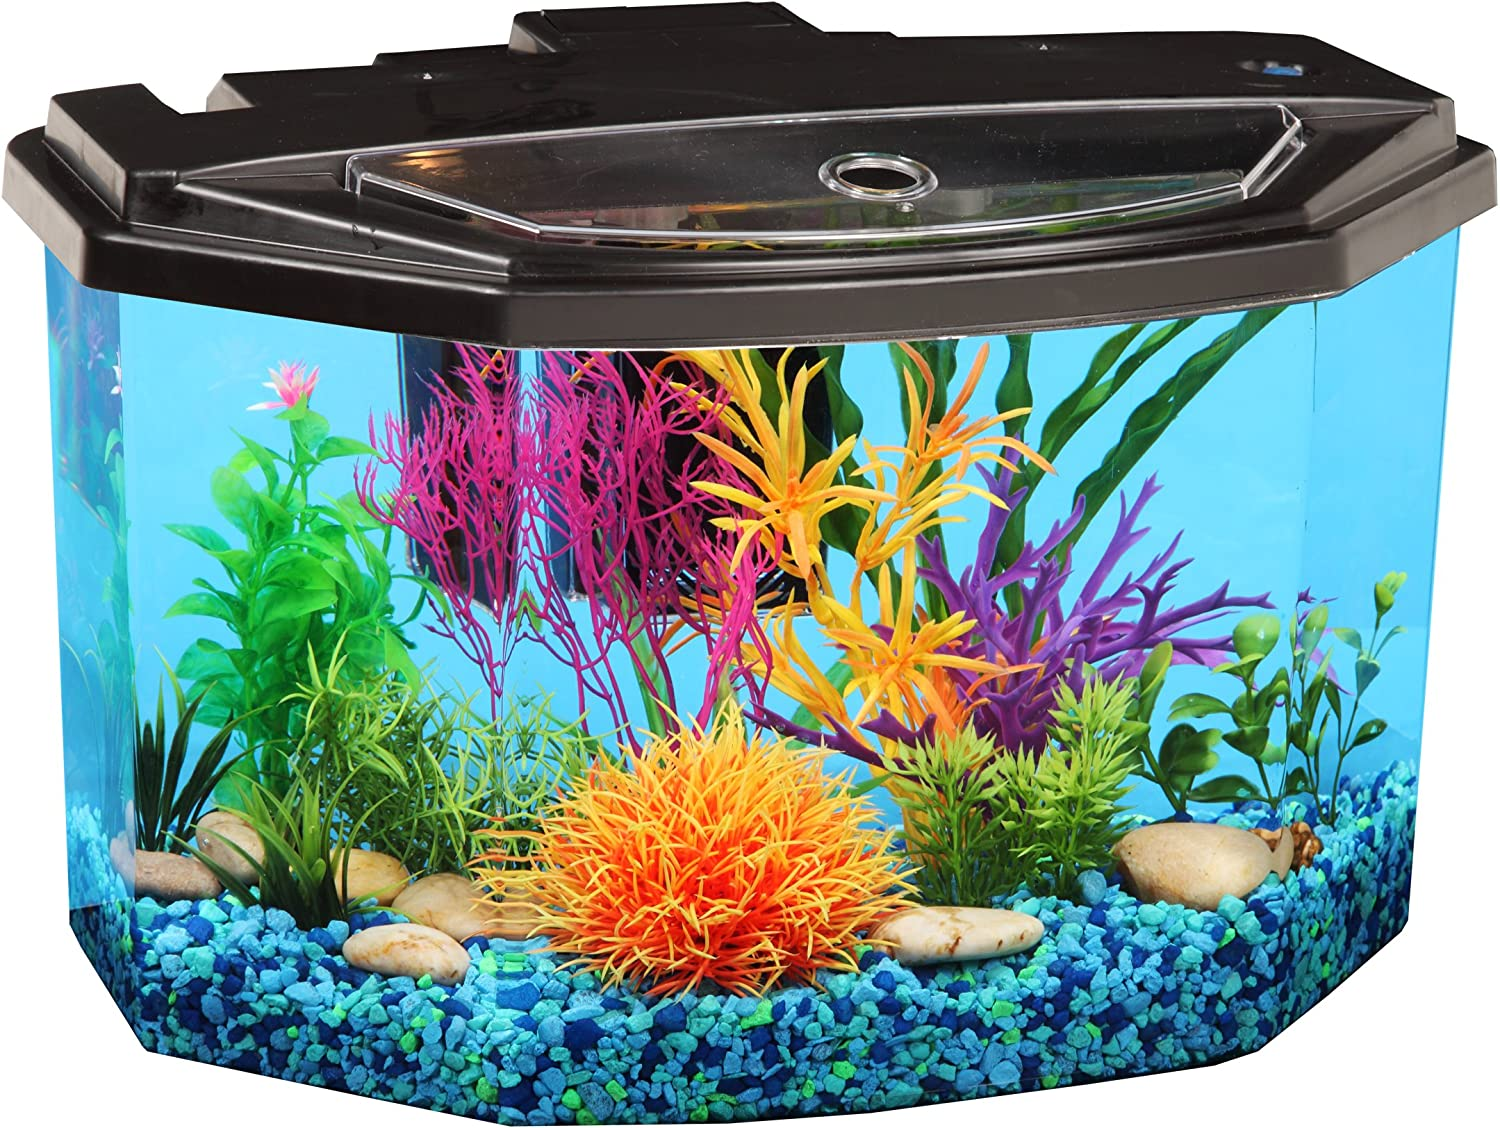 AquaView 3Gallon Fish Tank with LED Lighting and Power Filter